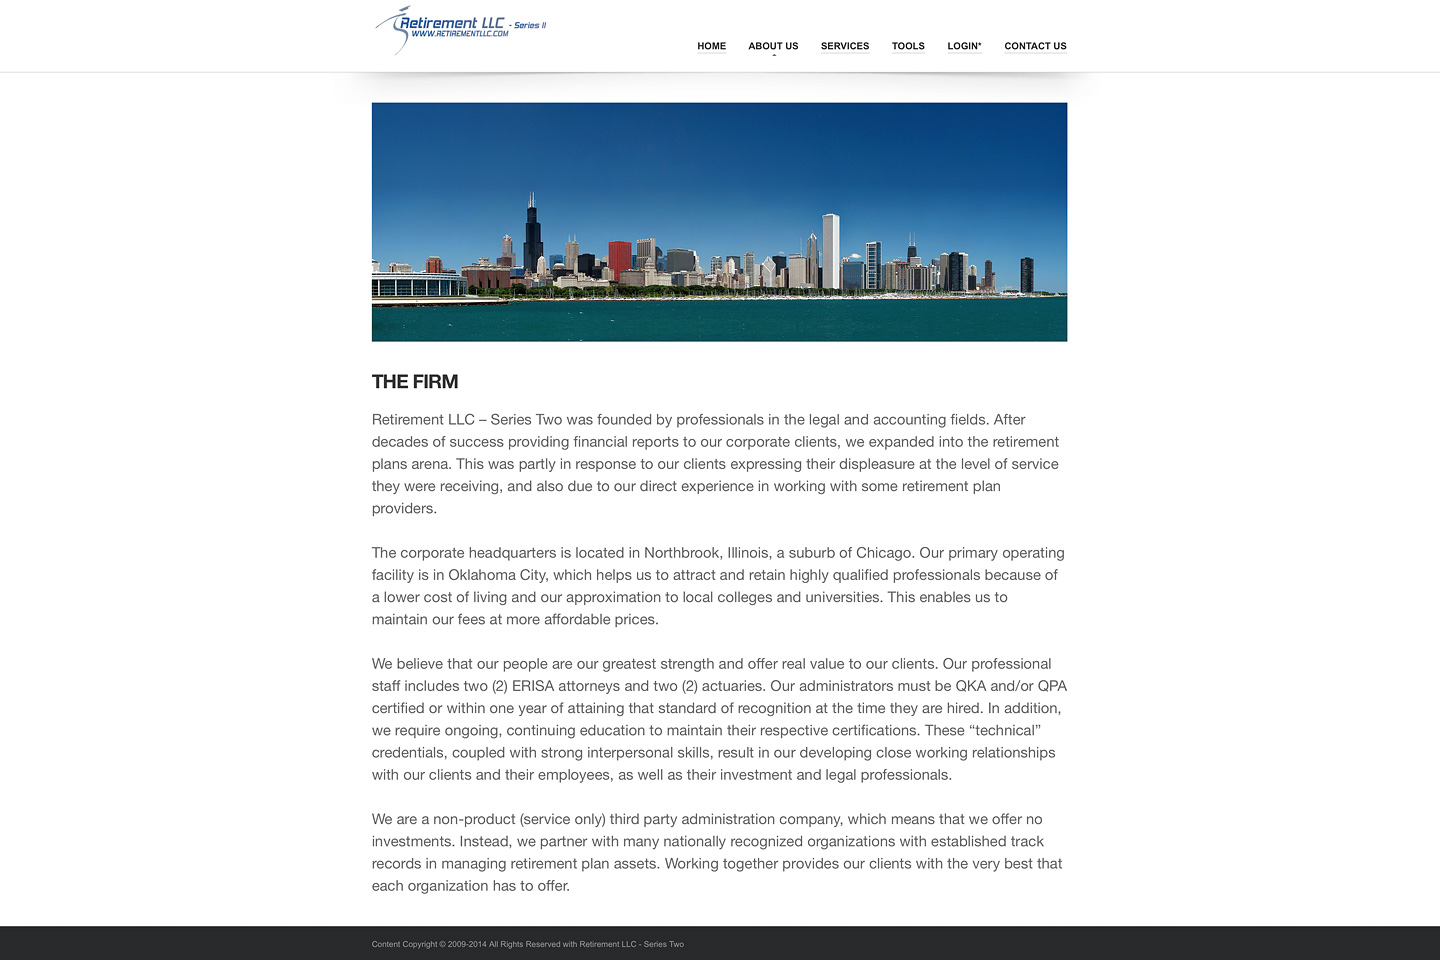 a screen capture of the retirementllc.com about us the firm page